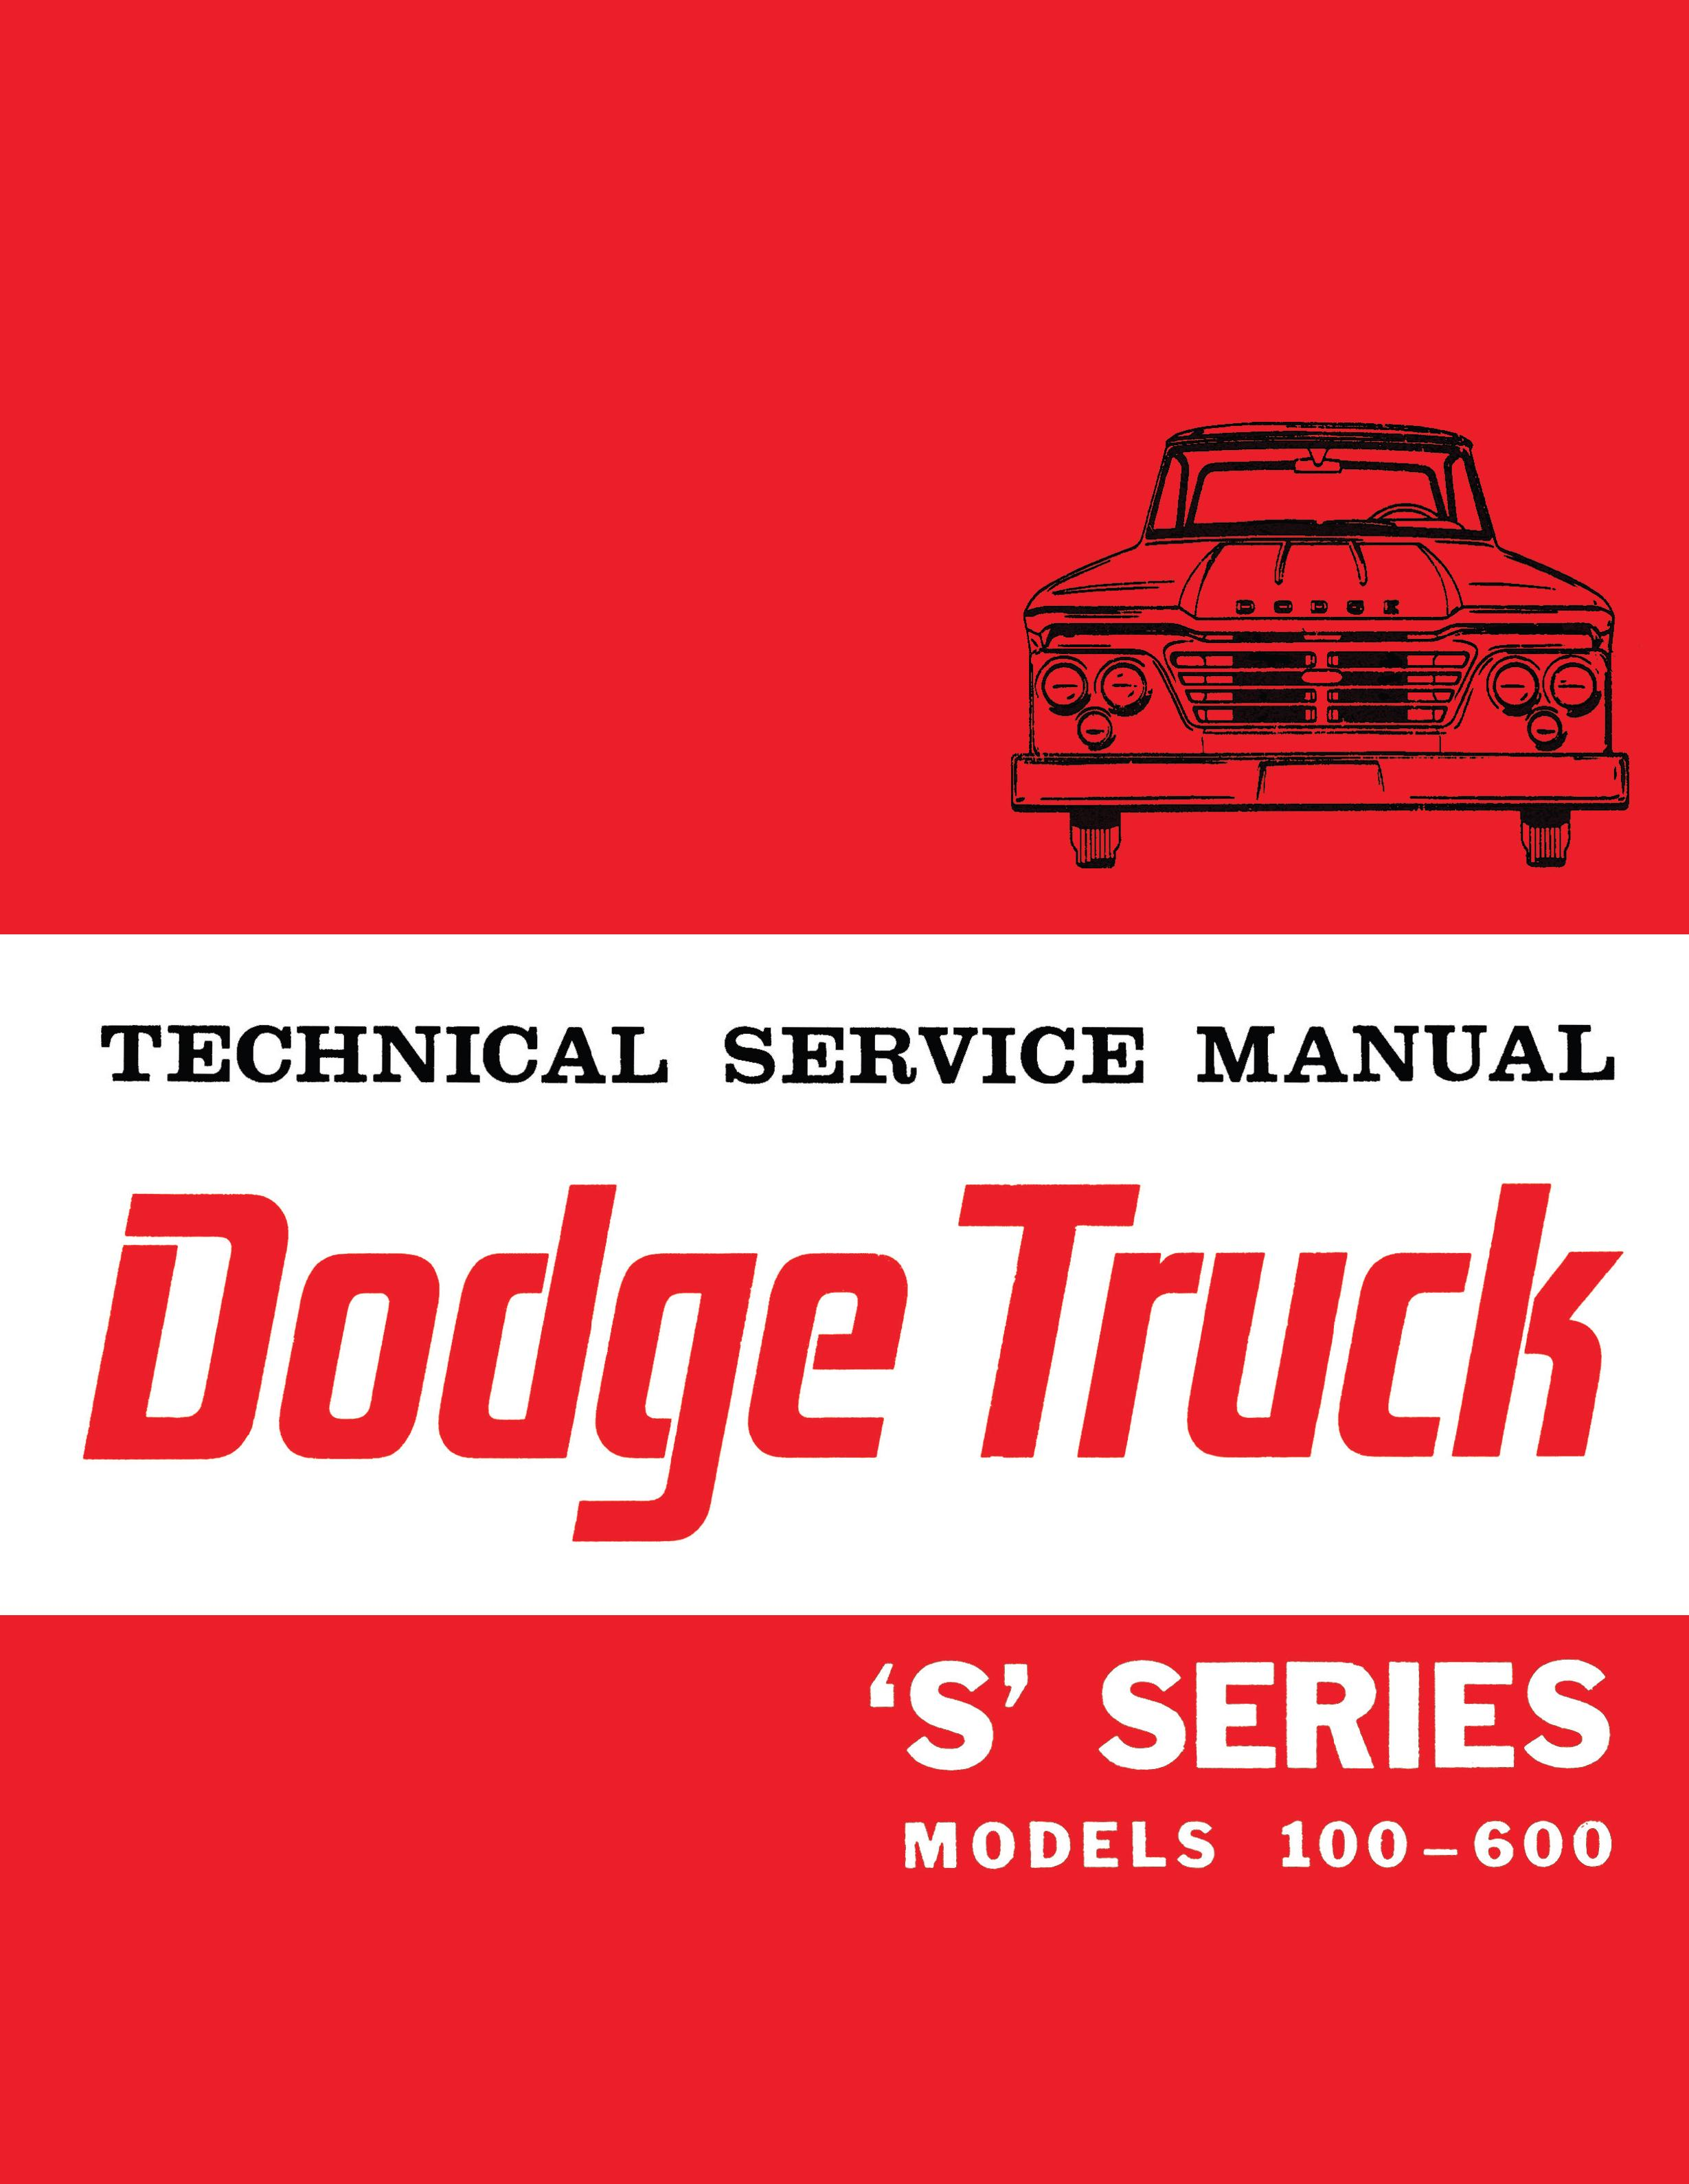 1964 Dodge Truck 100-600 S Series Shop Manual